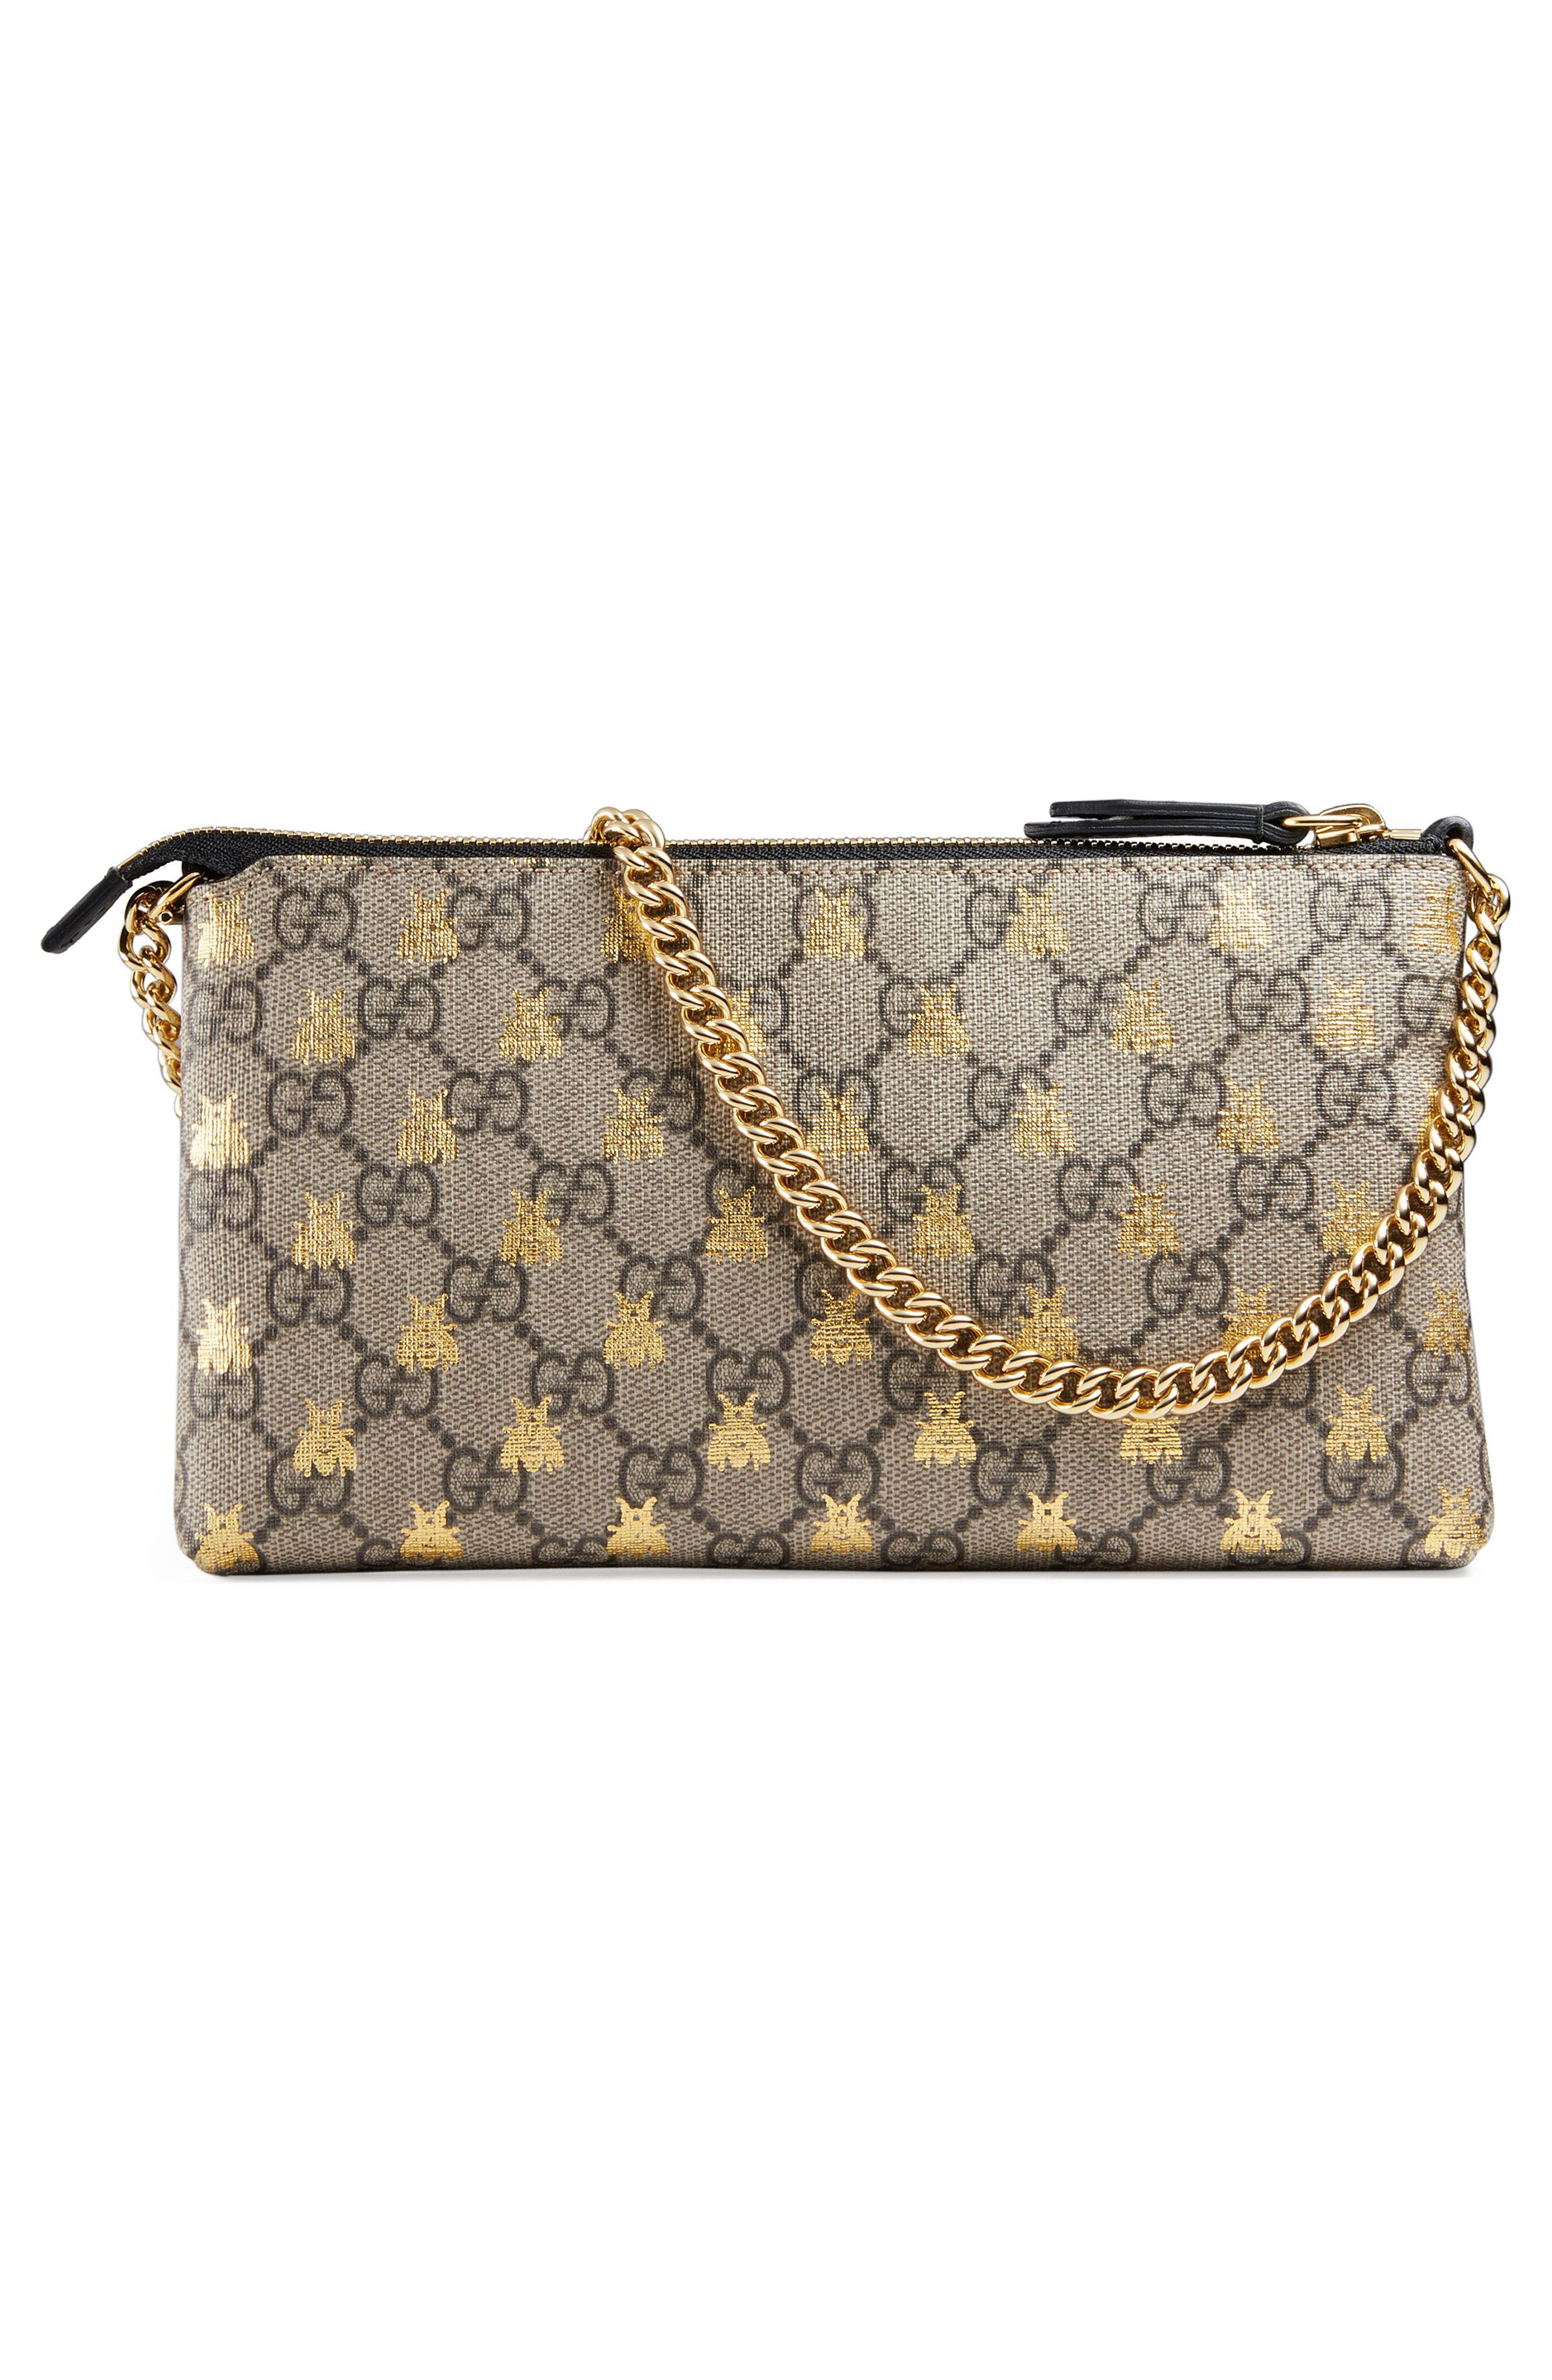 GUCCI, Linea Bee GG Supreme Wrist Wallet, Alternate thumbnail 3, color, 250